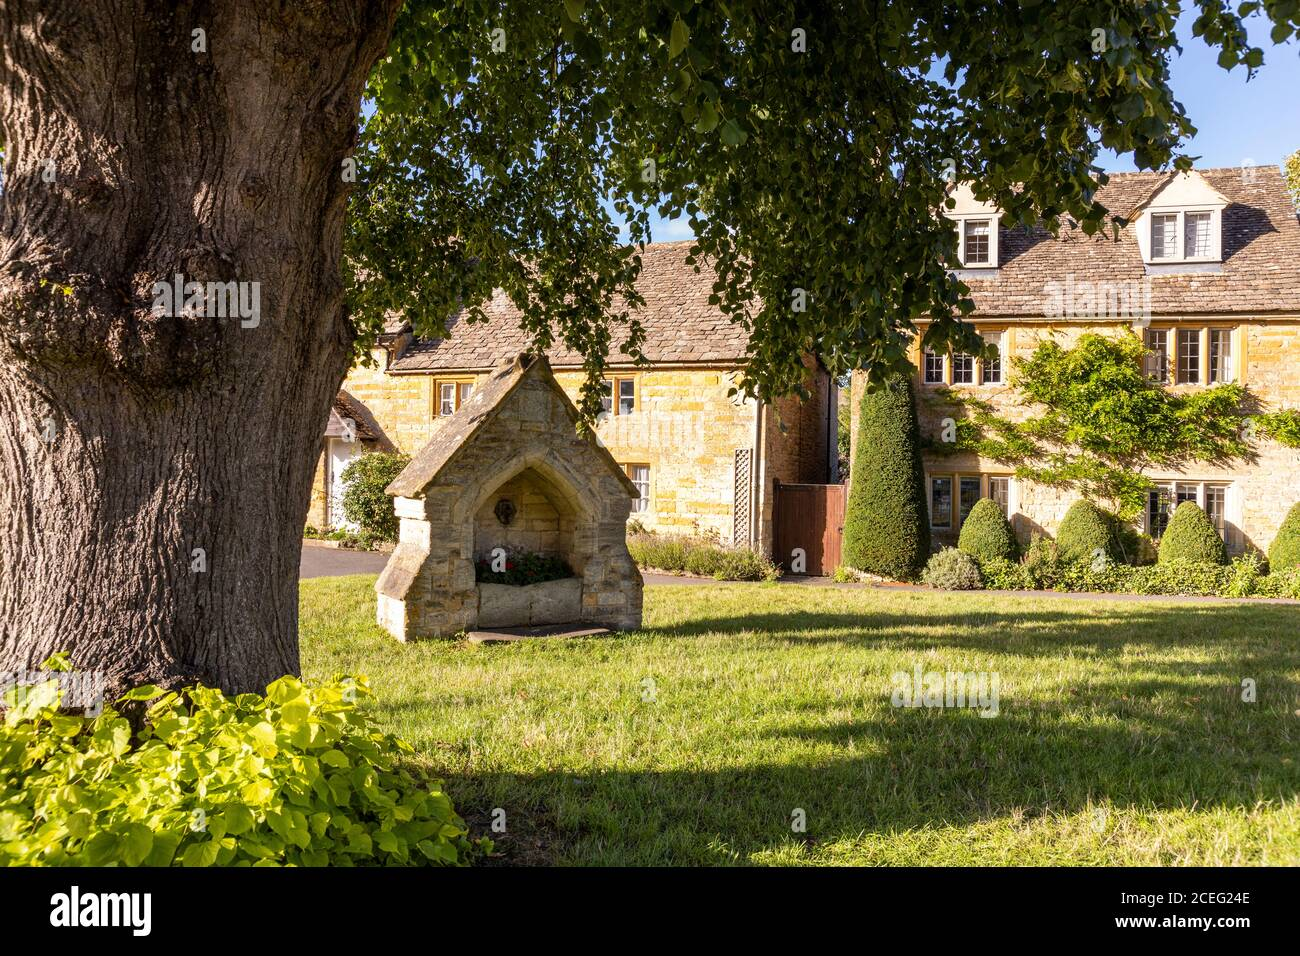 Evening light on cottages beside the village green in the Cotswold village of Lower Slaughter, Gloucestershire UK Stock Photo